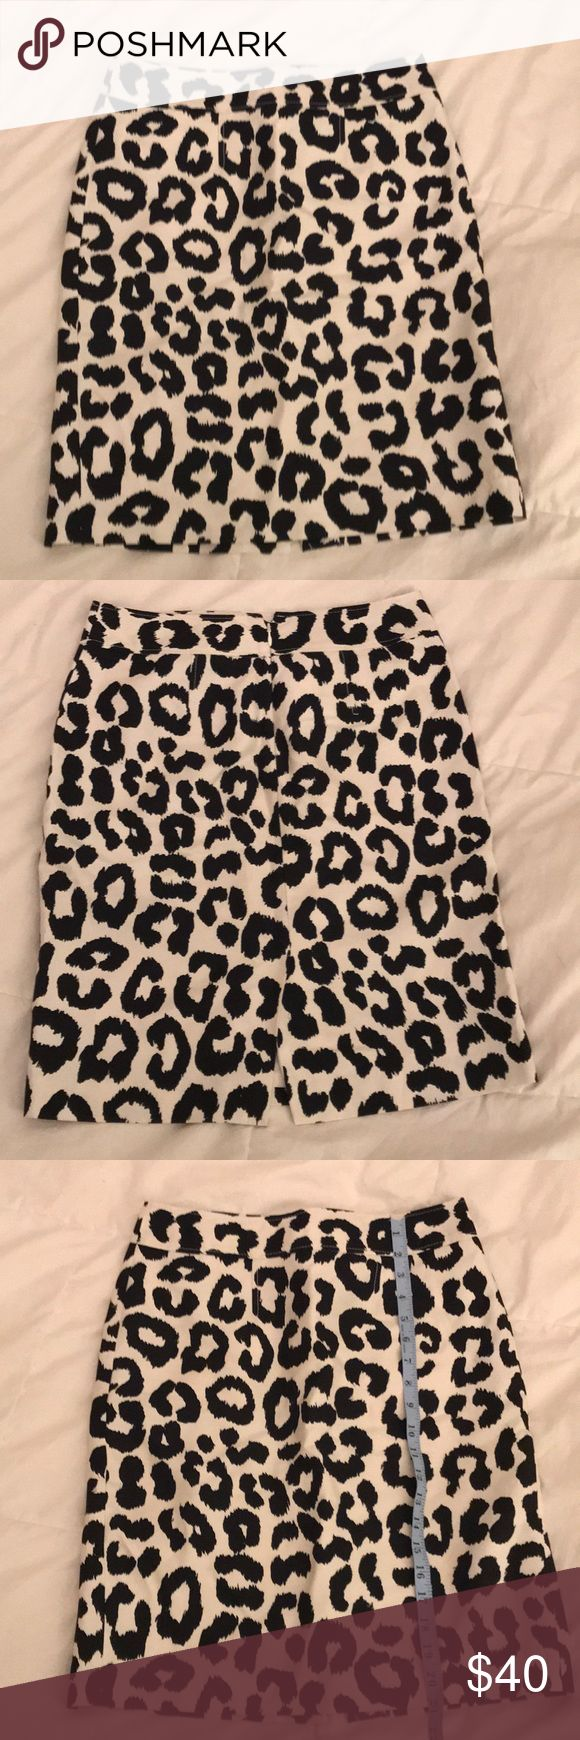 Leopard Print Loft Pencil Skirt This White and Black Leopard Print Pencil Skirt is so cute! Size 4.  21inch length. About a 6inch slit(pictured). Back zipper. 71%Cotton 29%Silk. Like New Condition. LOFT Skirts